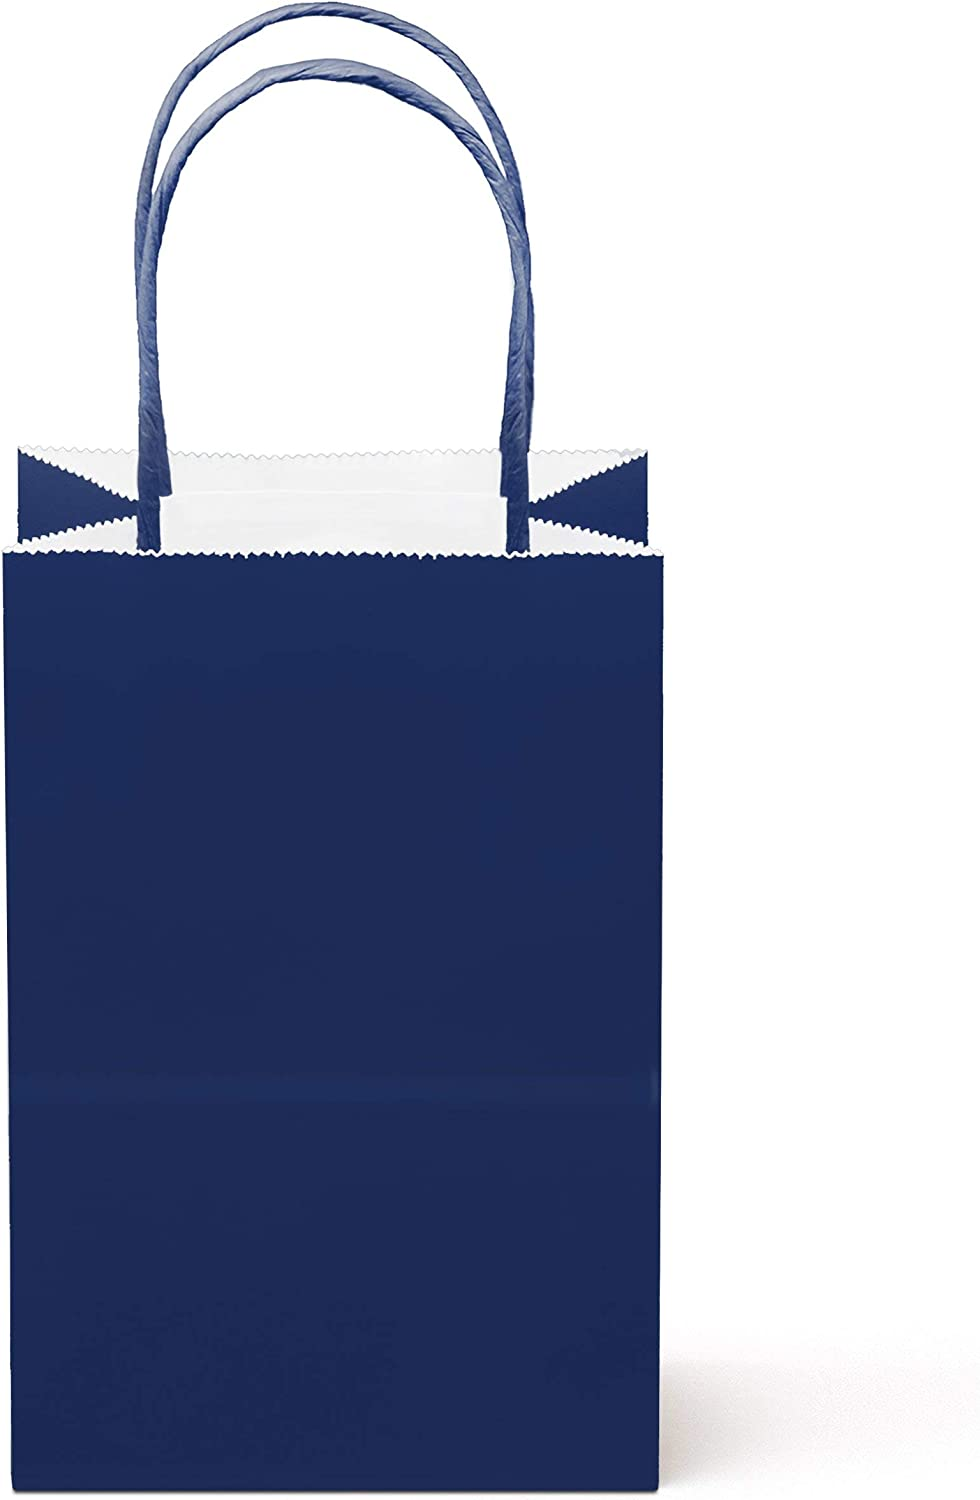 """12 Counts Food Safe Premium Paper and Ink Small 8.5"""" X 5.25"""", Vivid Colored Kraft Bag with Colored Sturdy Handle, Perfect for Goodie Favor DIY Bag, Environmentally Safe (Small, Navy)"""